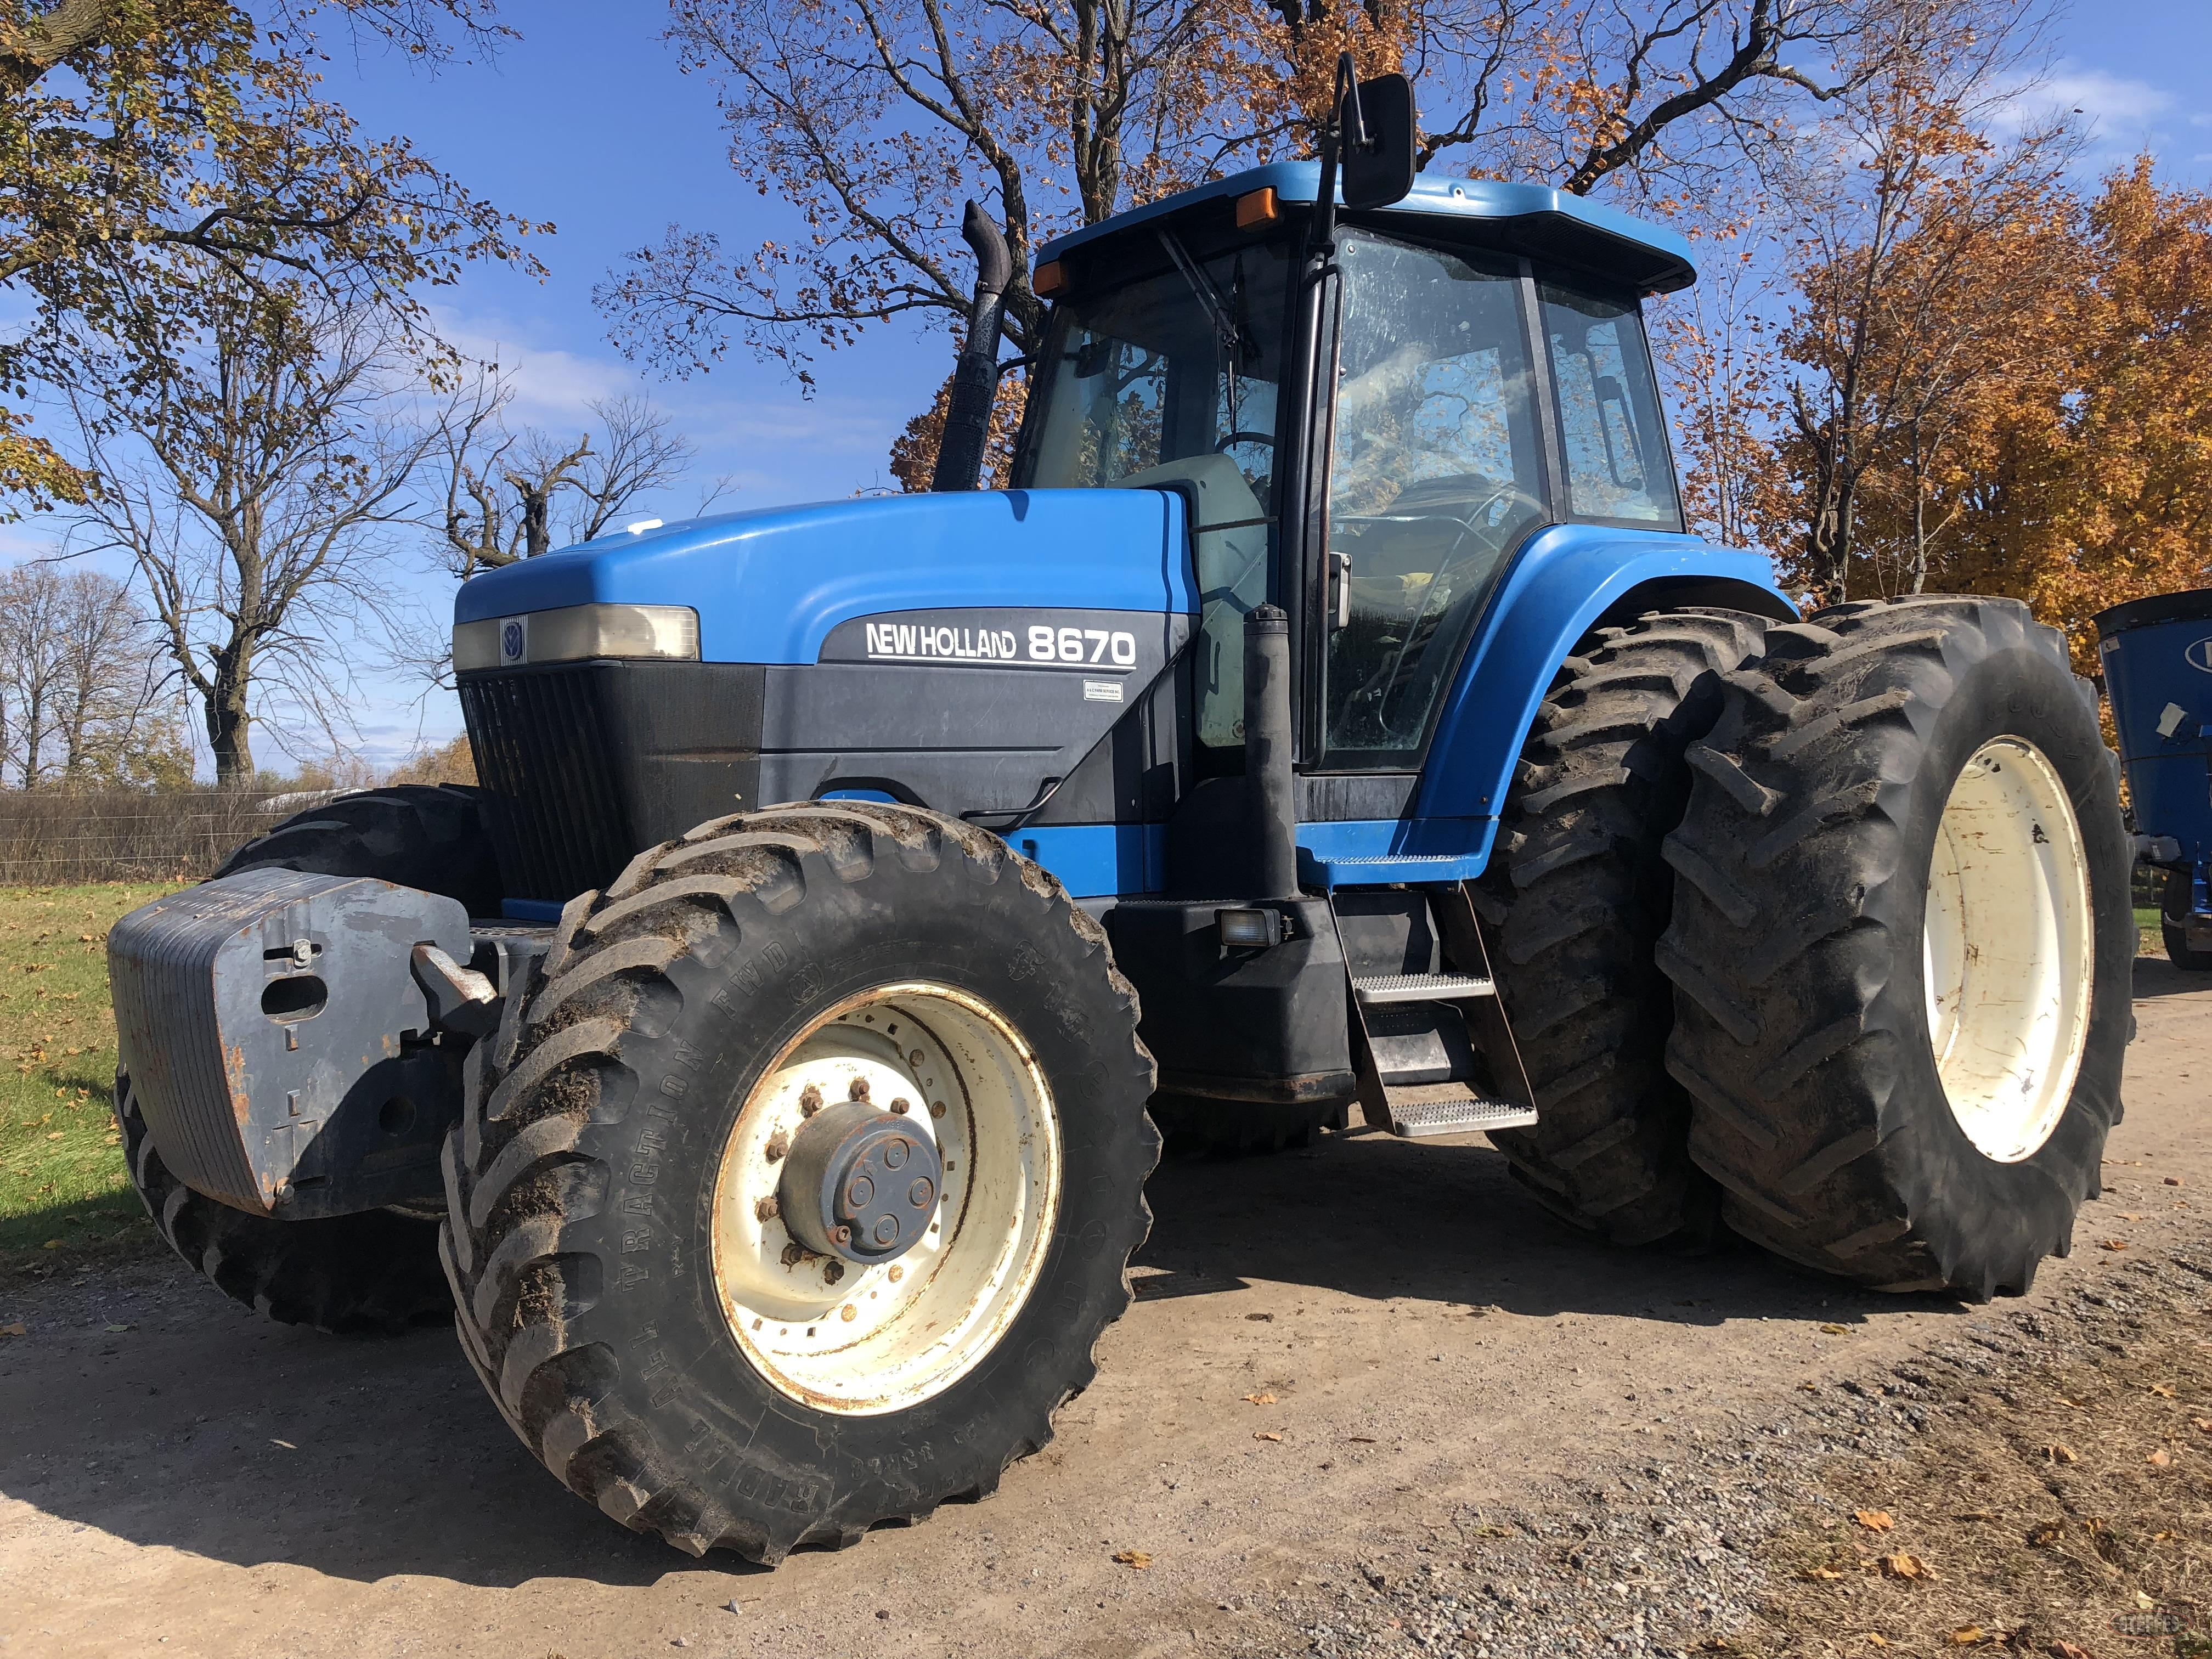 2000 Ford New Holland 8670